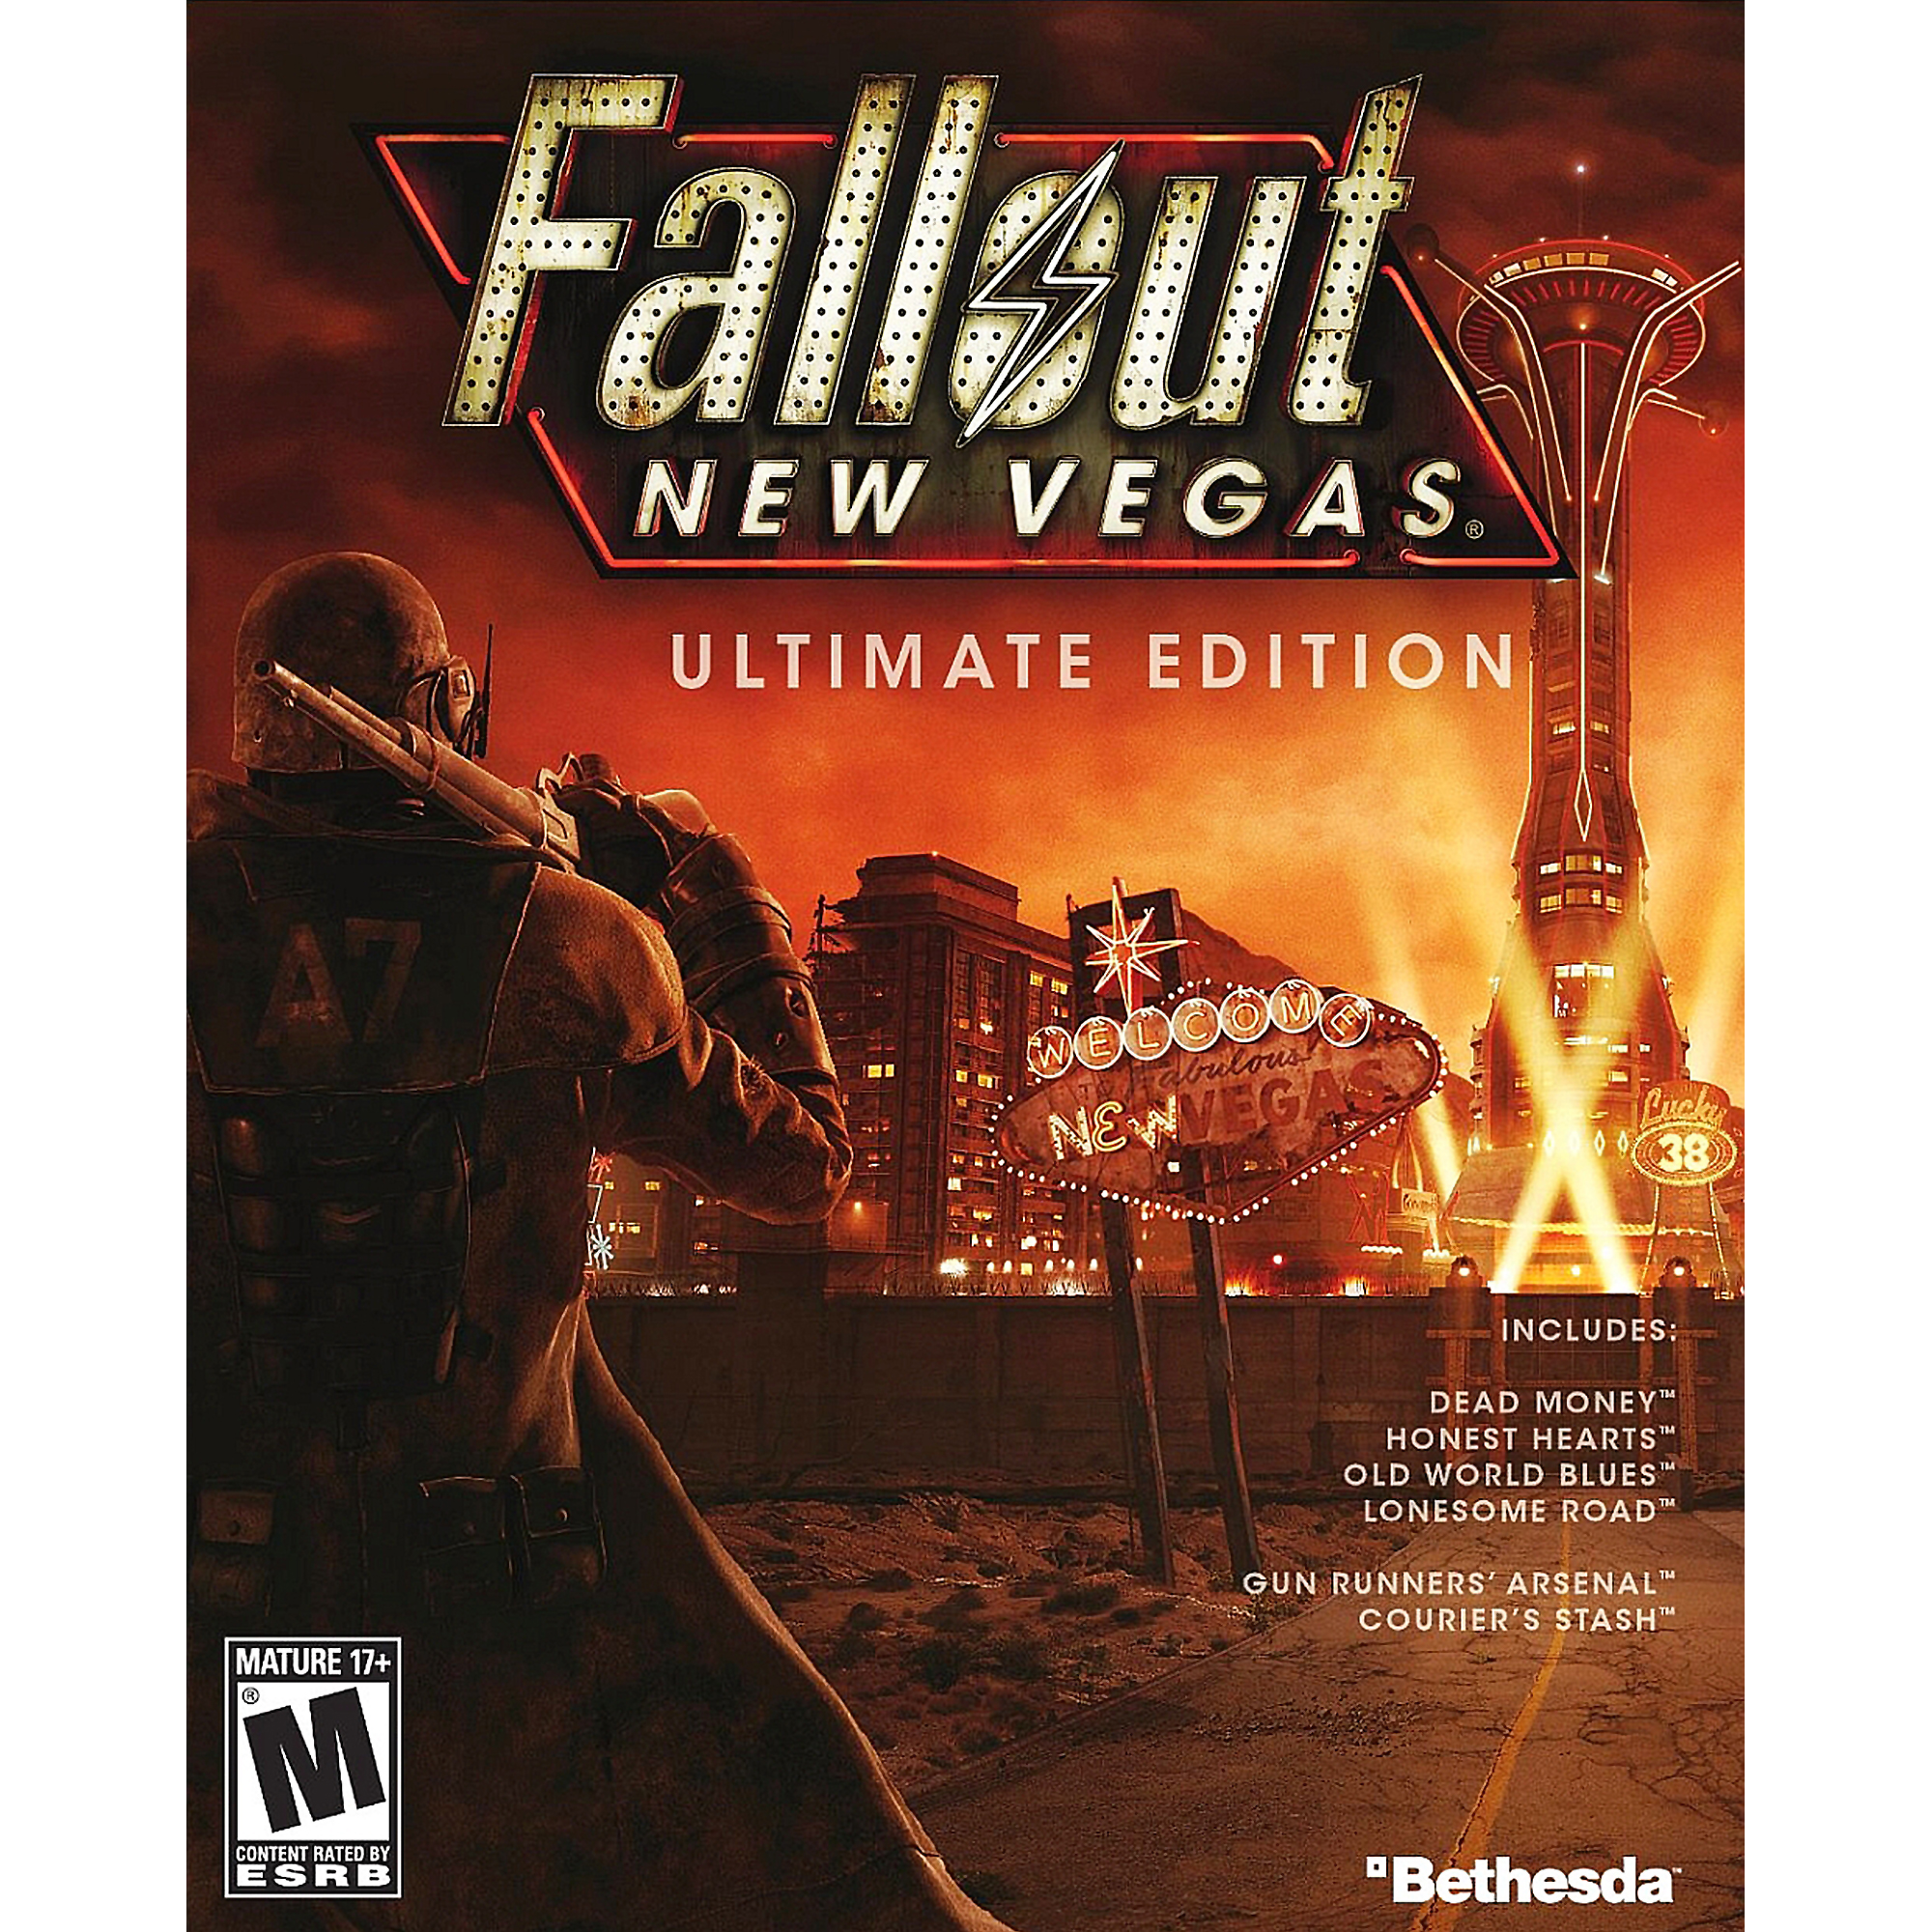 Fallout New Vegas Ultimate Edition, Bethesda, PC, [Digital Download], 818858025249